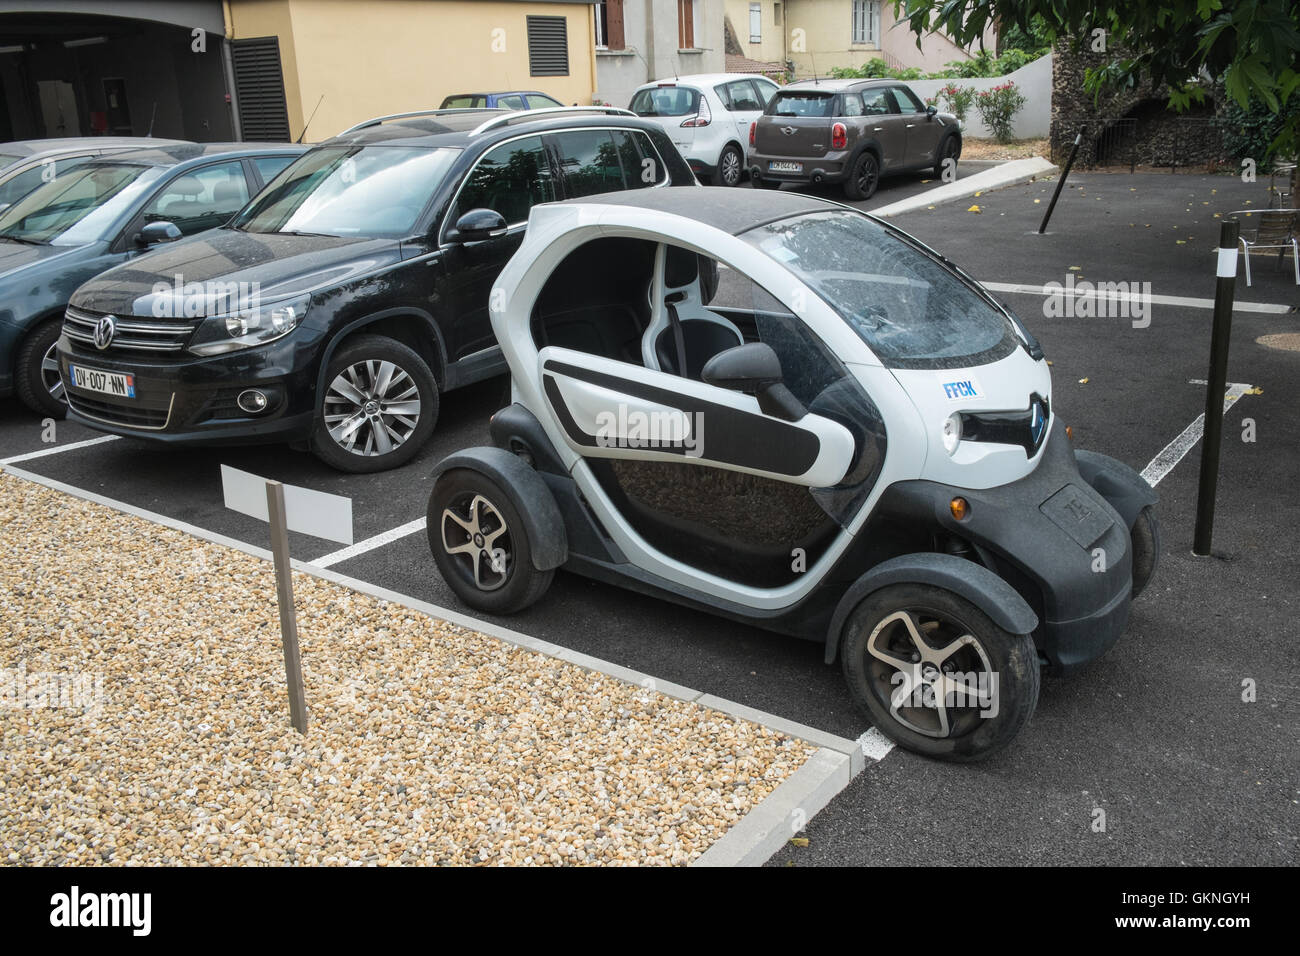 Small micro car a Renault Twizy electric car badly parked,or blatantly ignoring marker lines in Limoux hospital - Stock Image